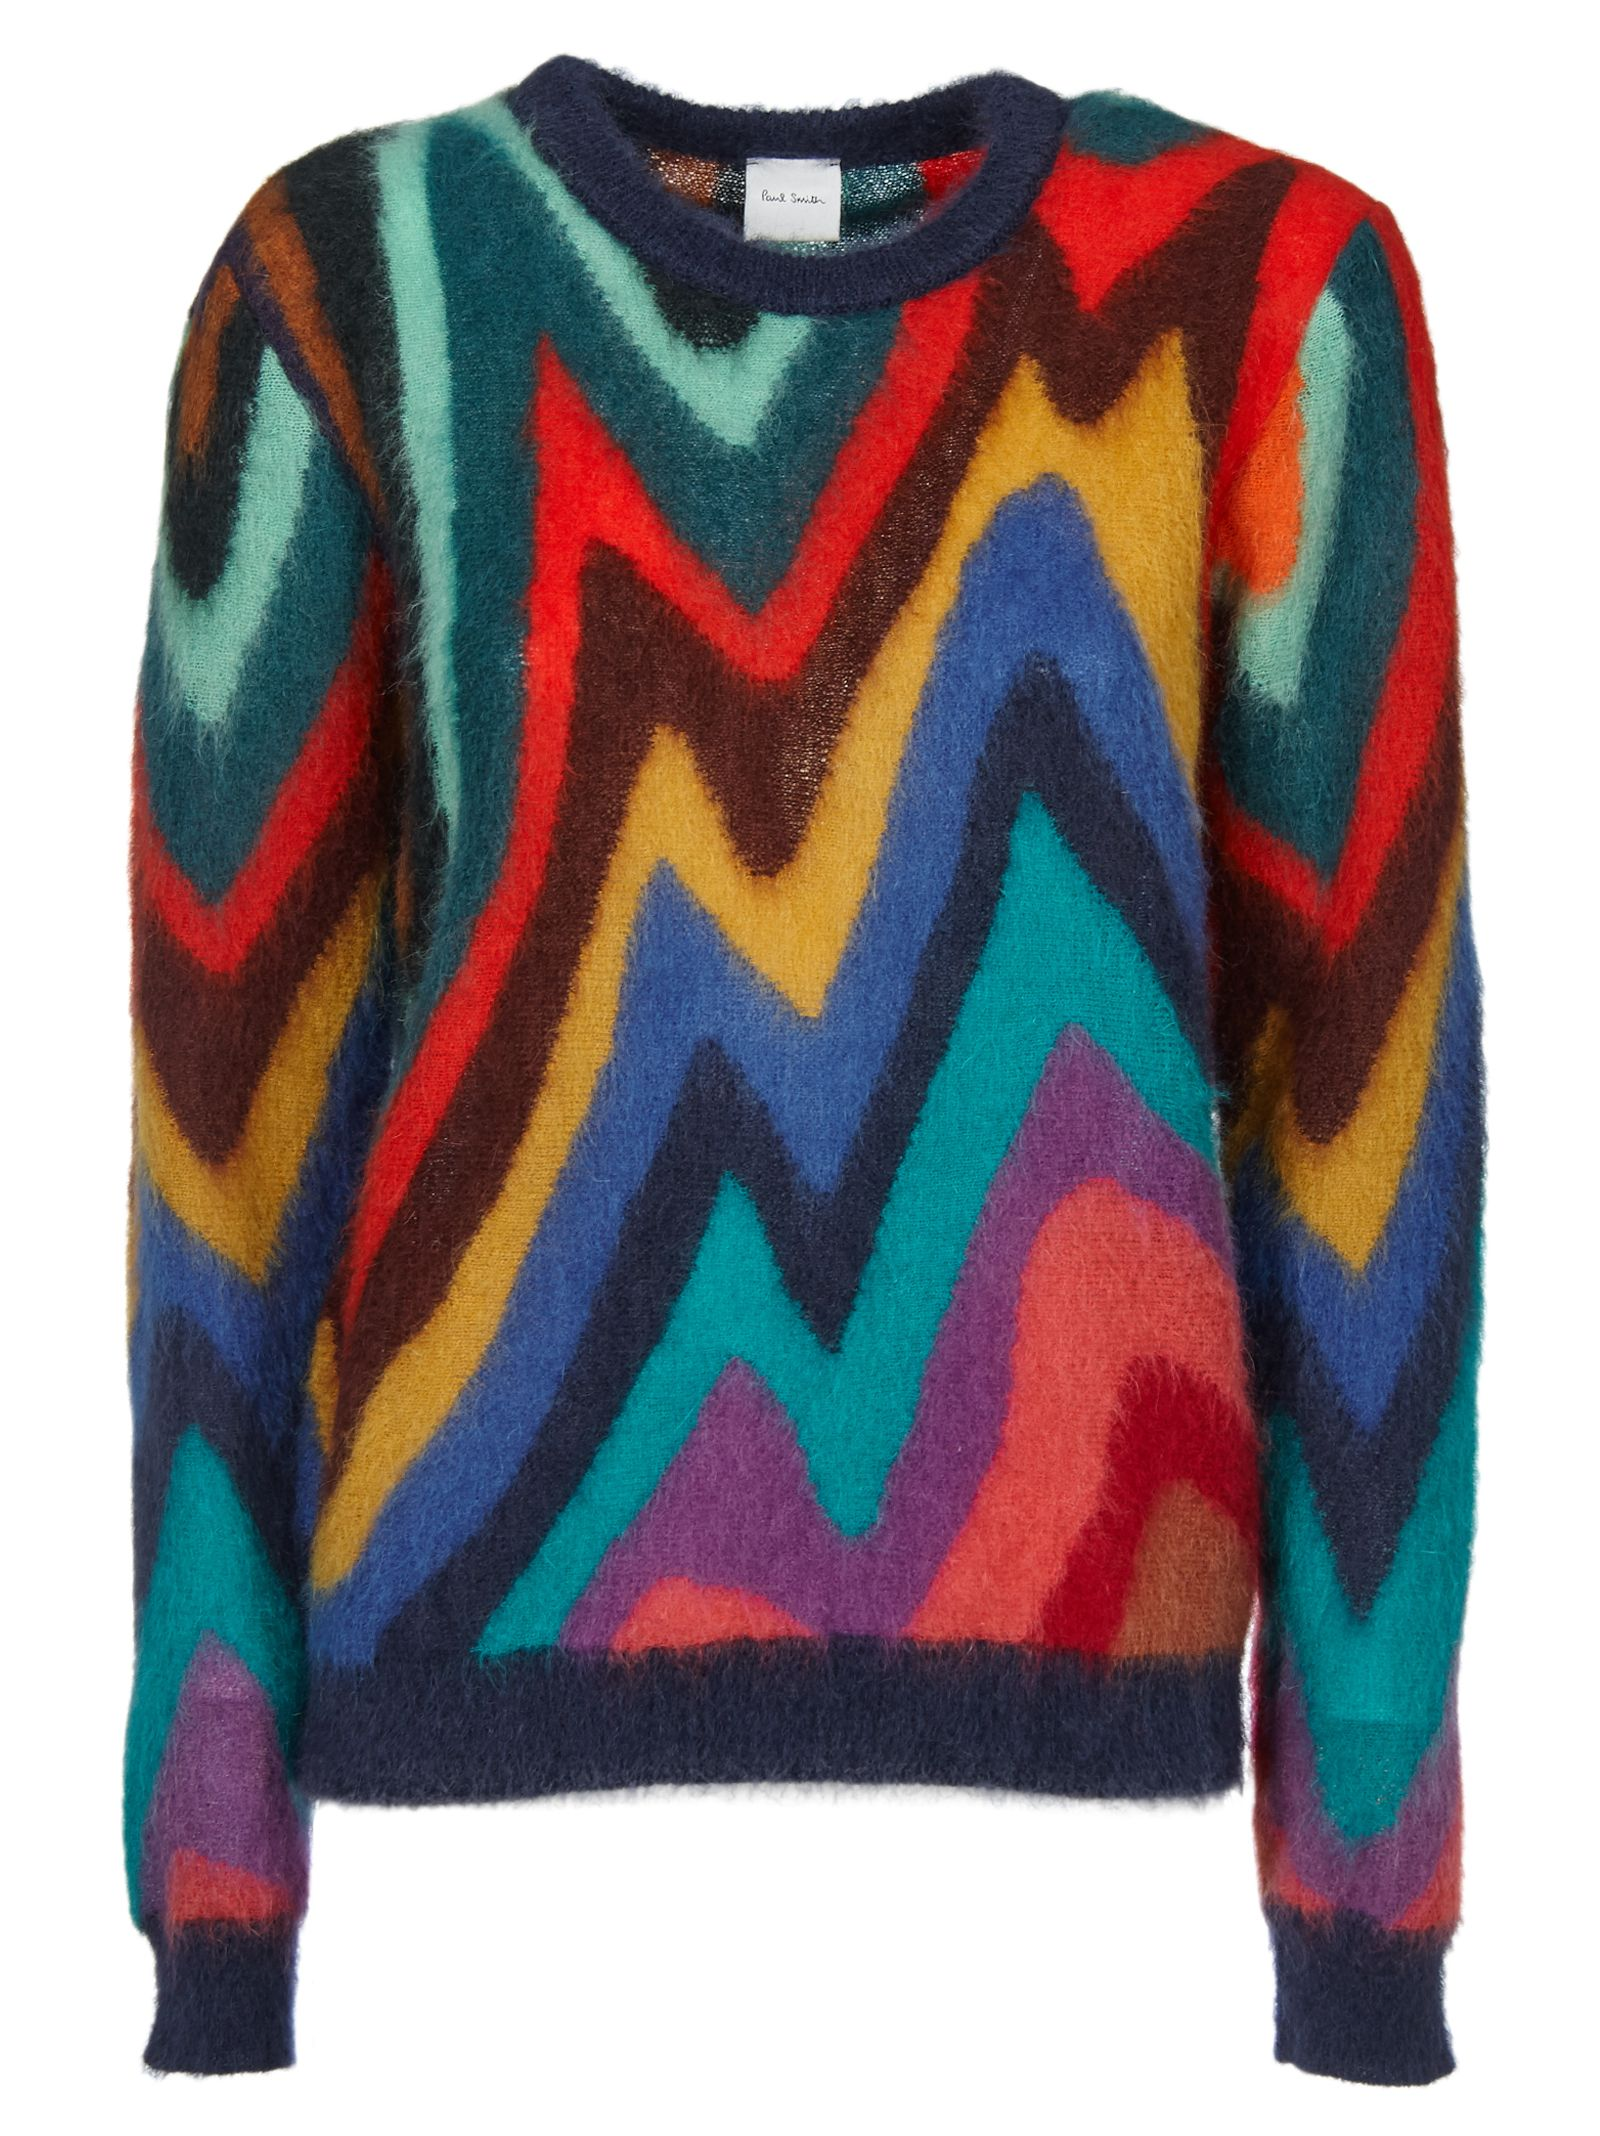 Paul Smith ABSTRACT PRINT JUMPER